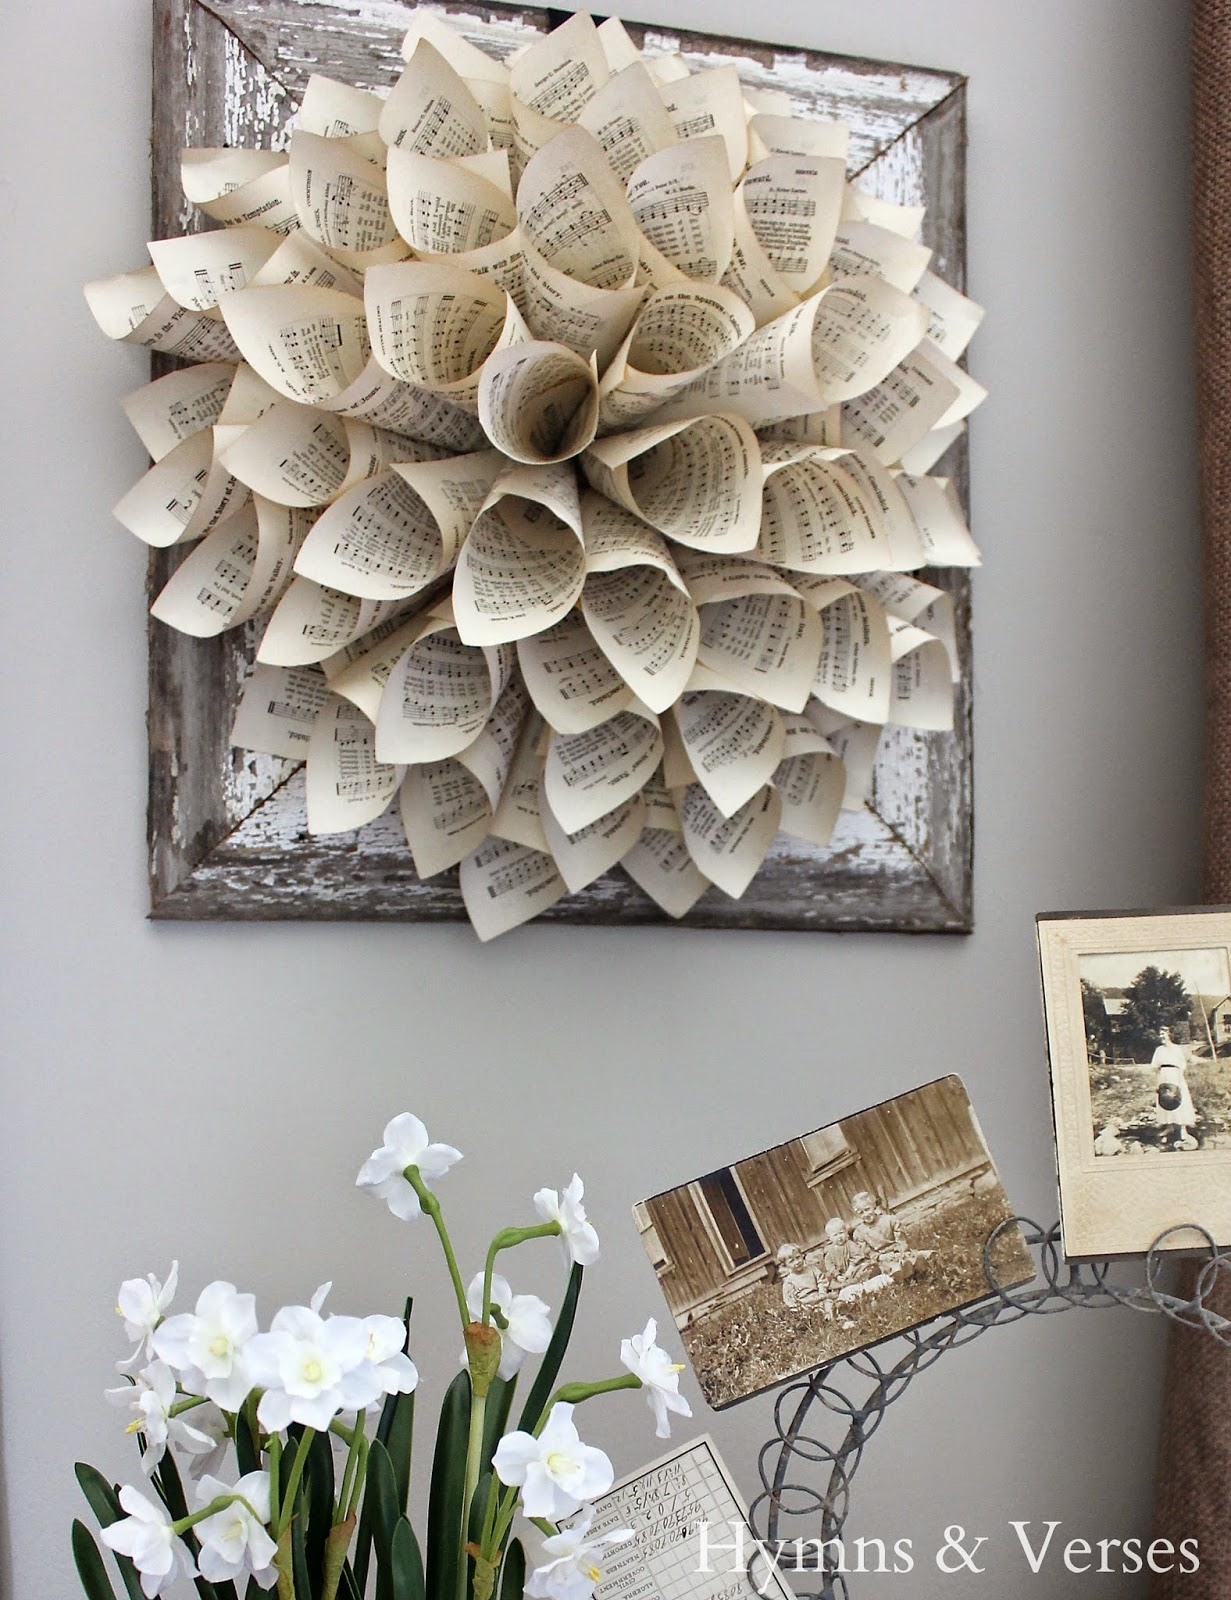 Hymns and verses paper wreath with barn wood frame for sale for Craft wreaths for sale